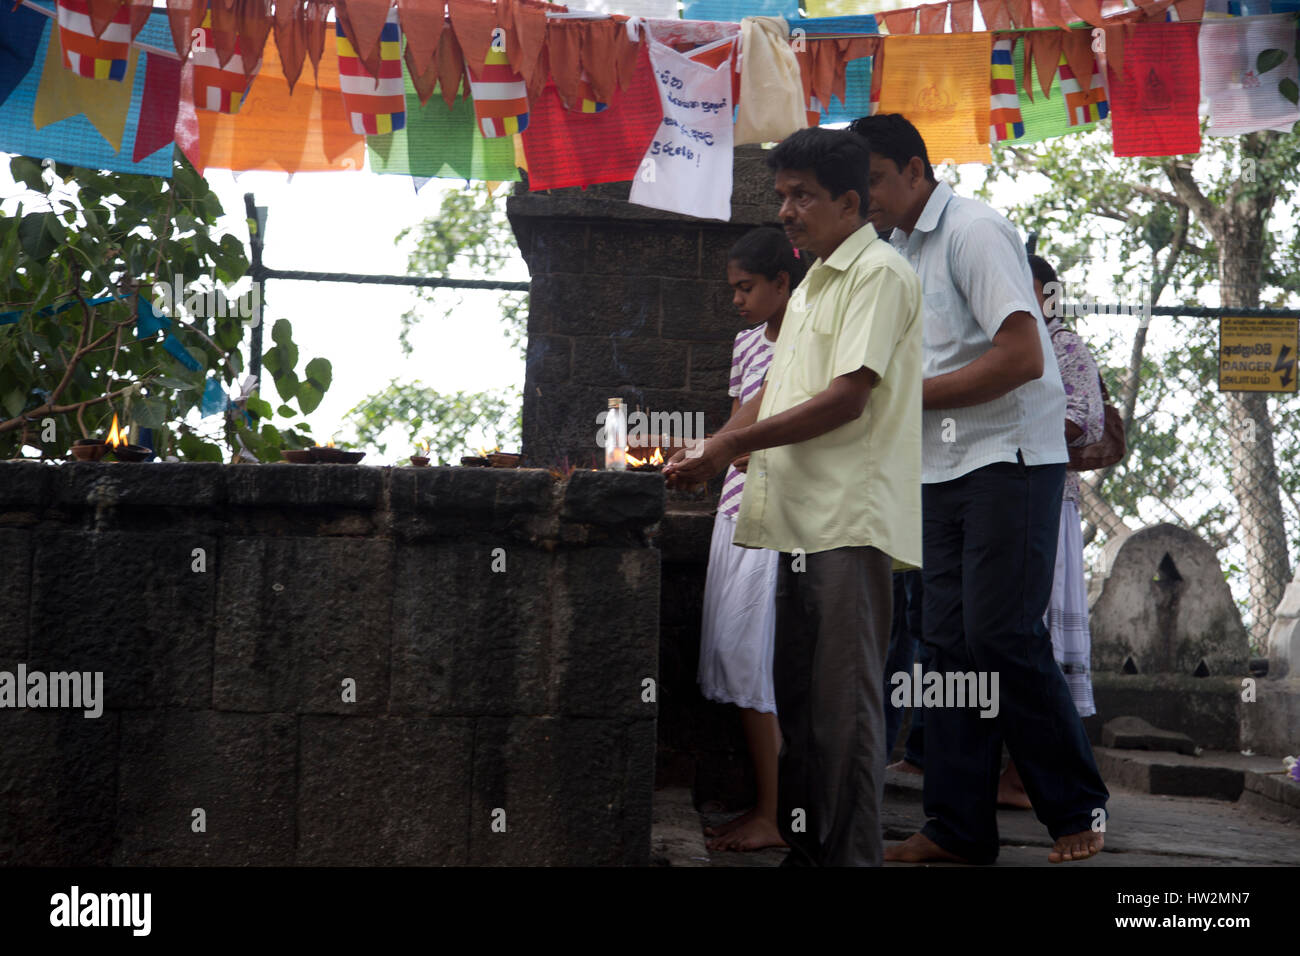 Dambulla Sri Lanka People Lighting Butter Lamps By Bo Tree - Stock Image